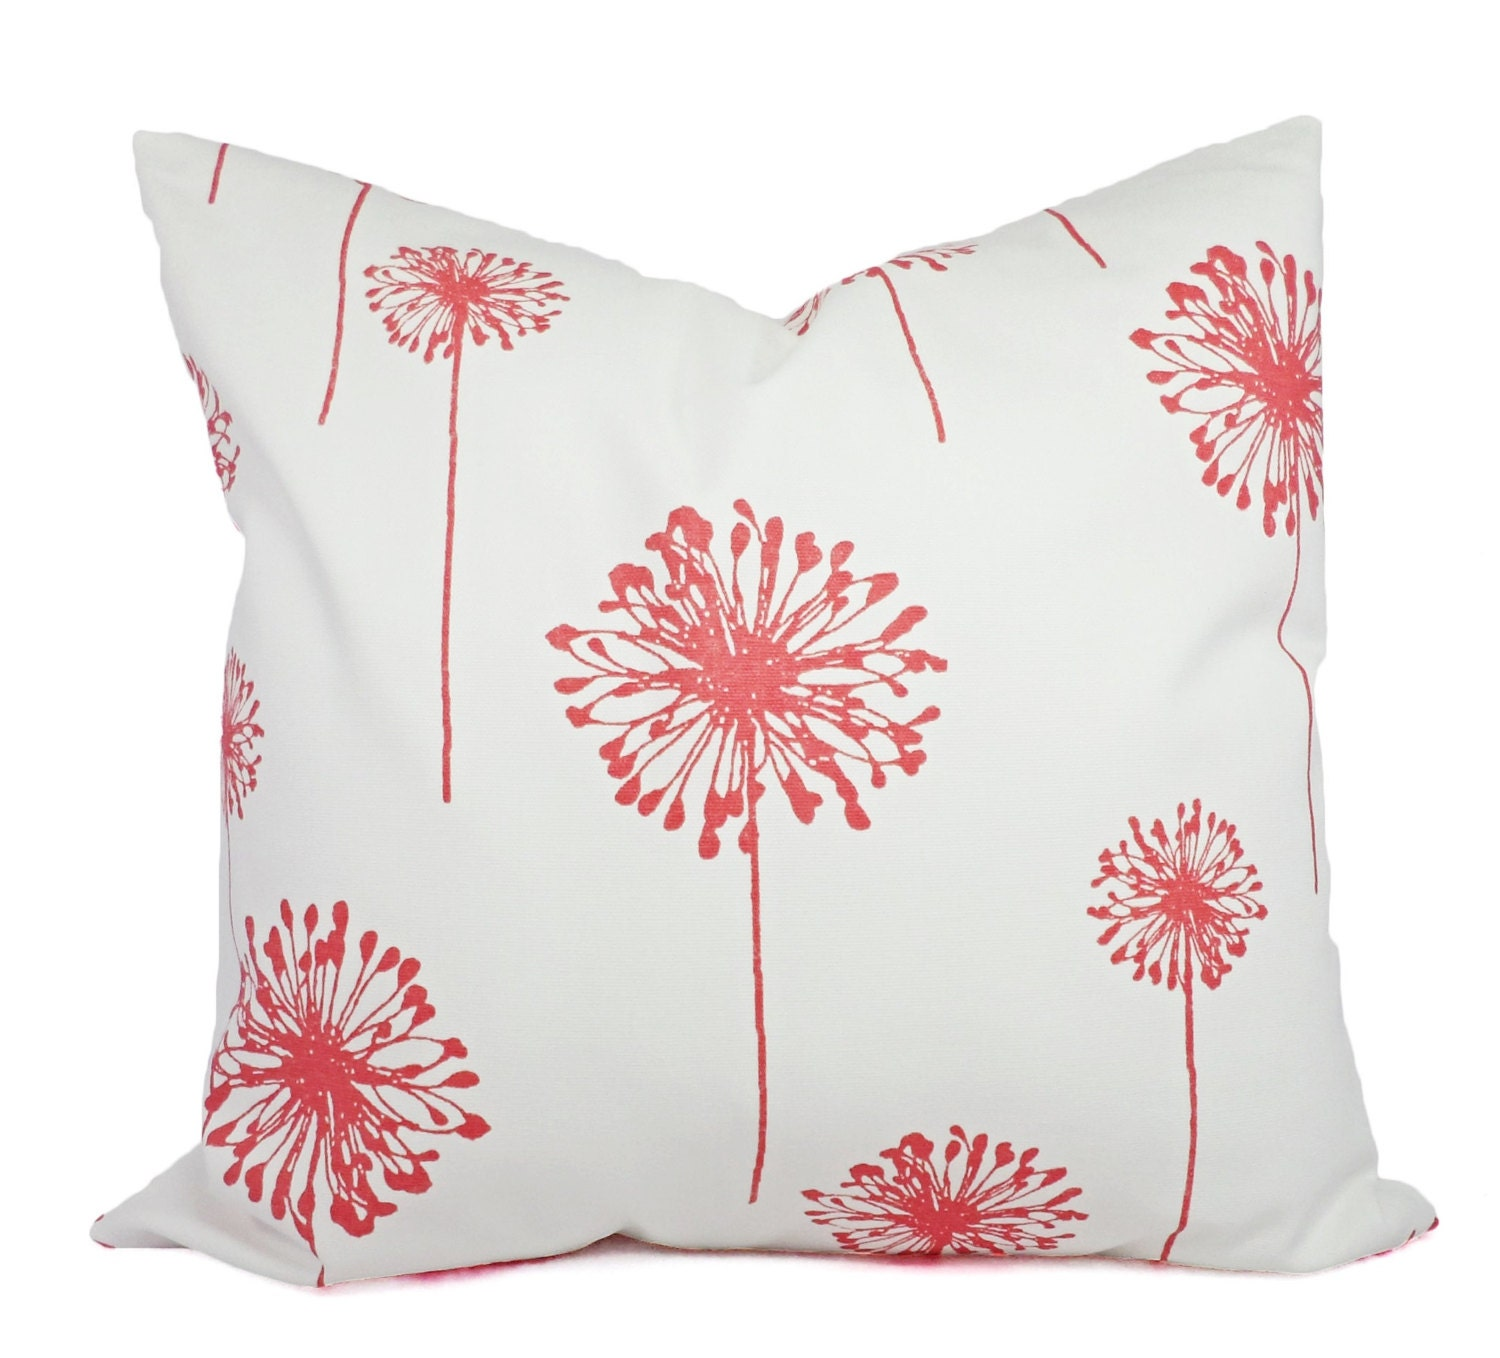 Coral Throw Pillows Coral Pillows Pink by CastawayCoveDecor